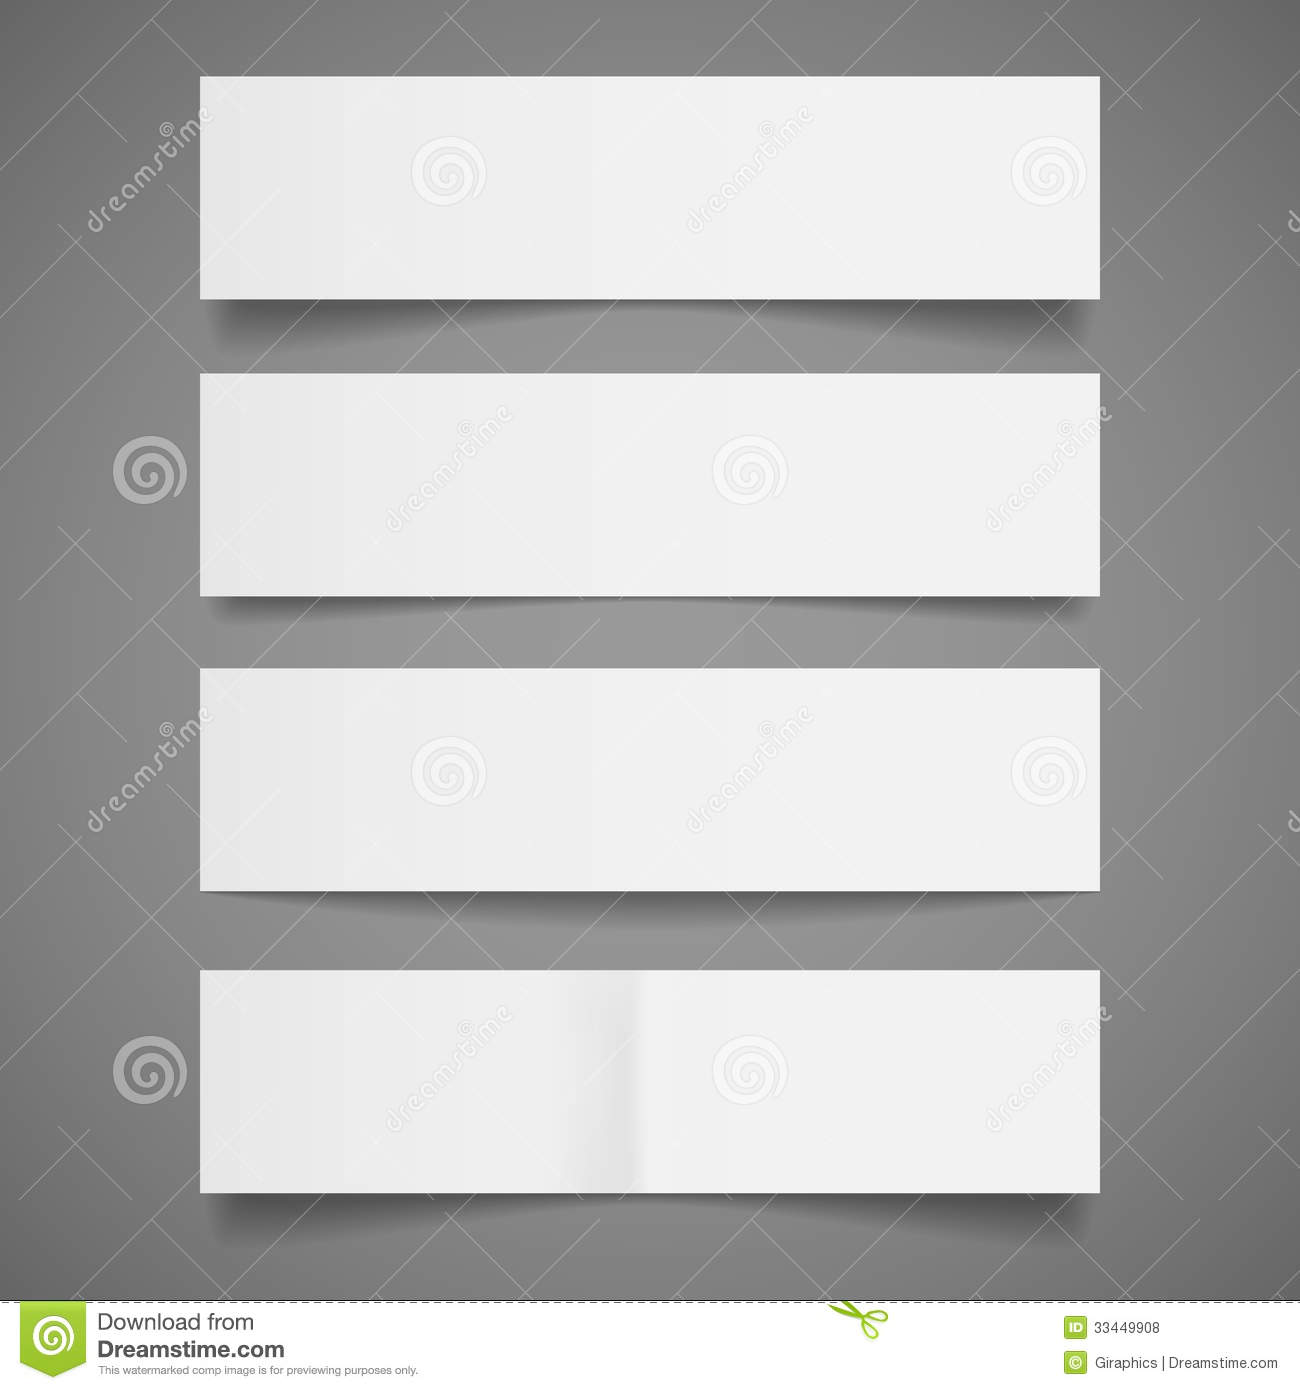 White Paper Banners Royalty Free Stock Photos - Image: 33449908